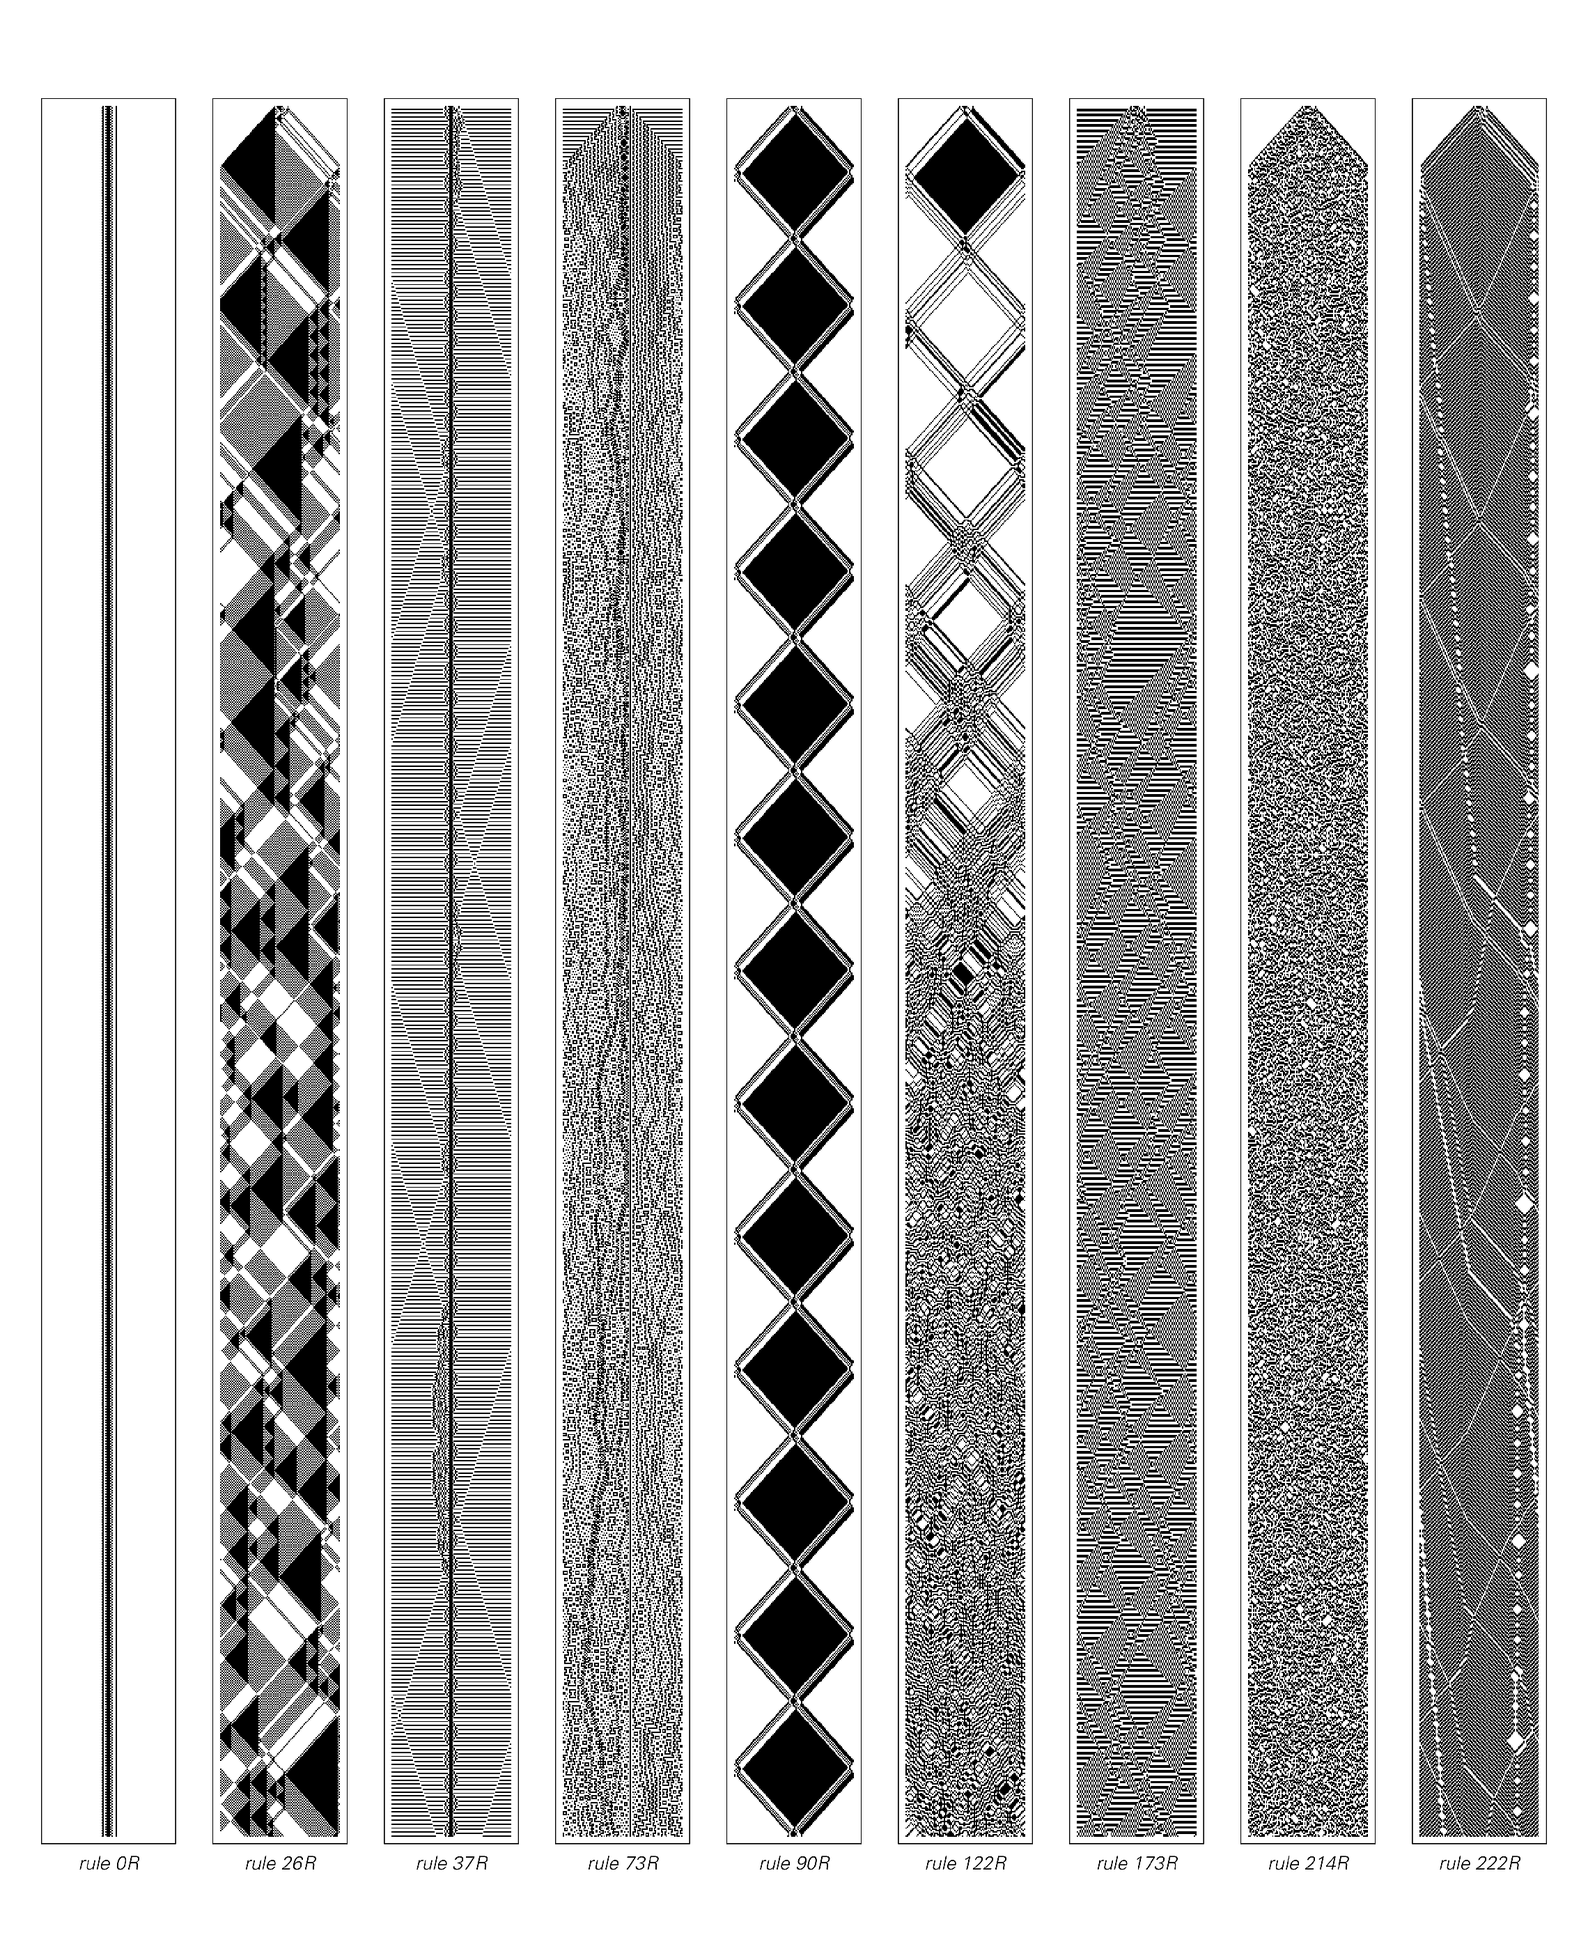 Reversible cellular automata with various rules